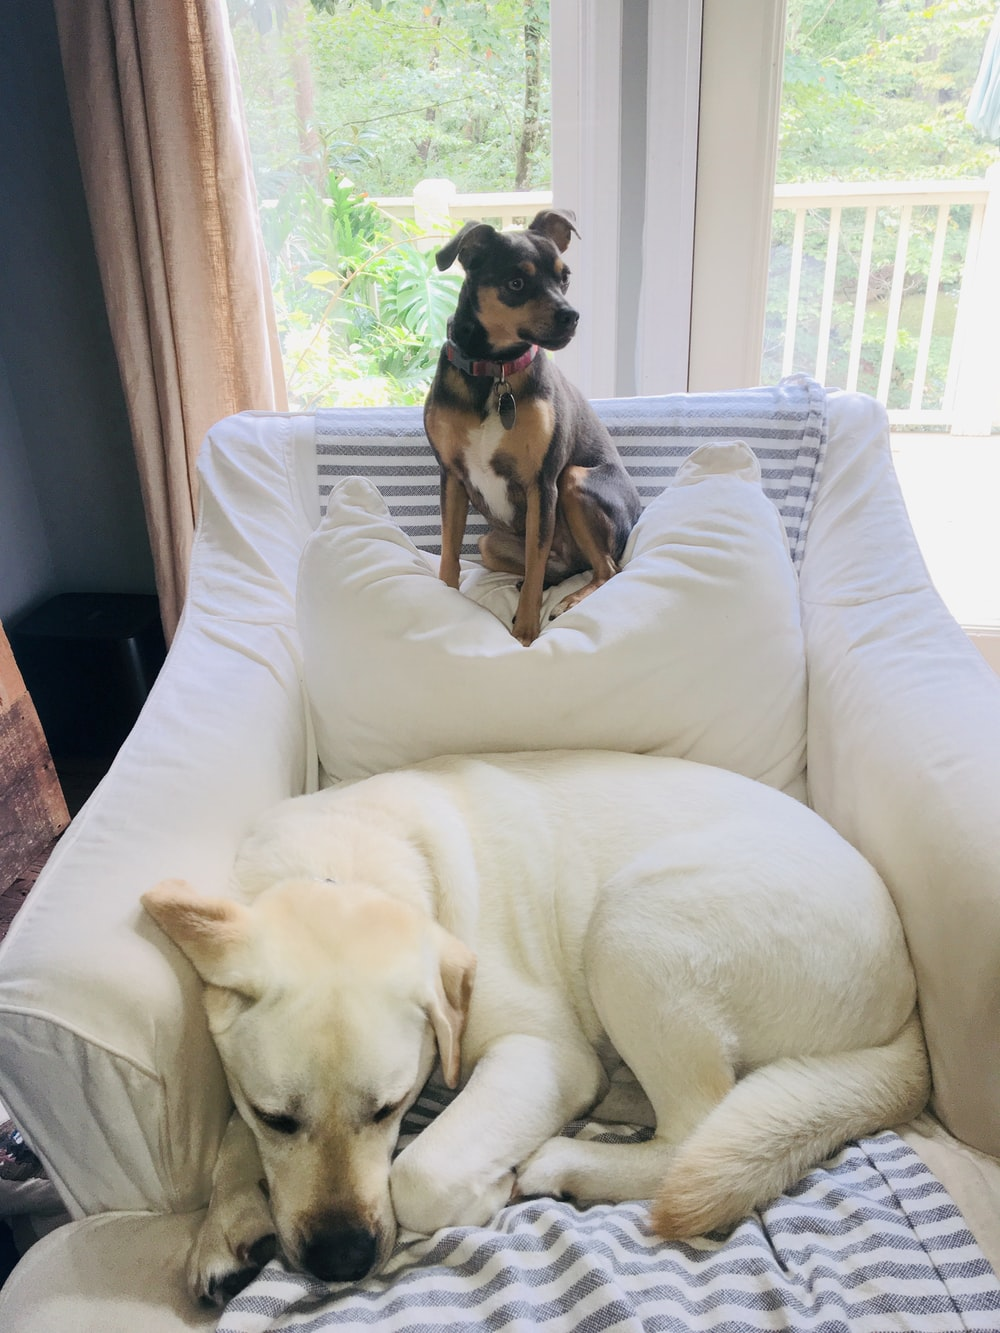 two dogs in a sofa armchair close-up photography